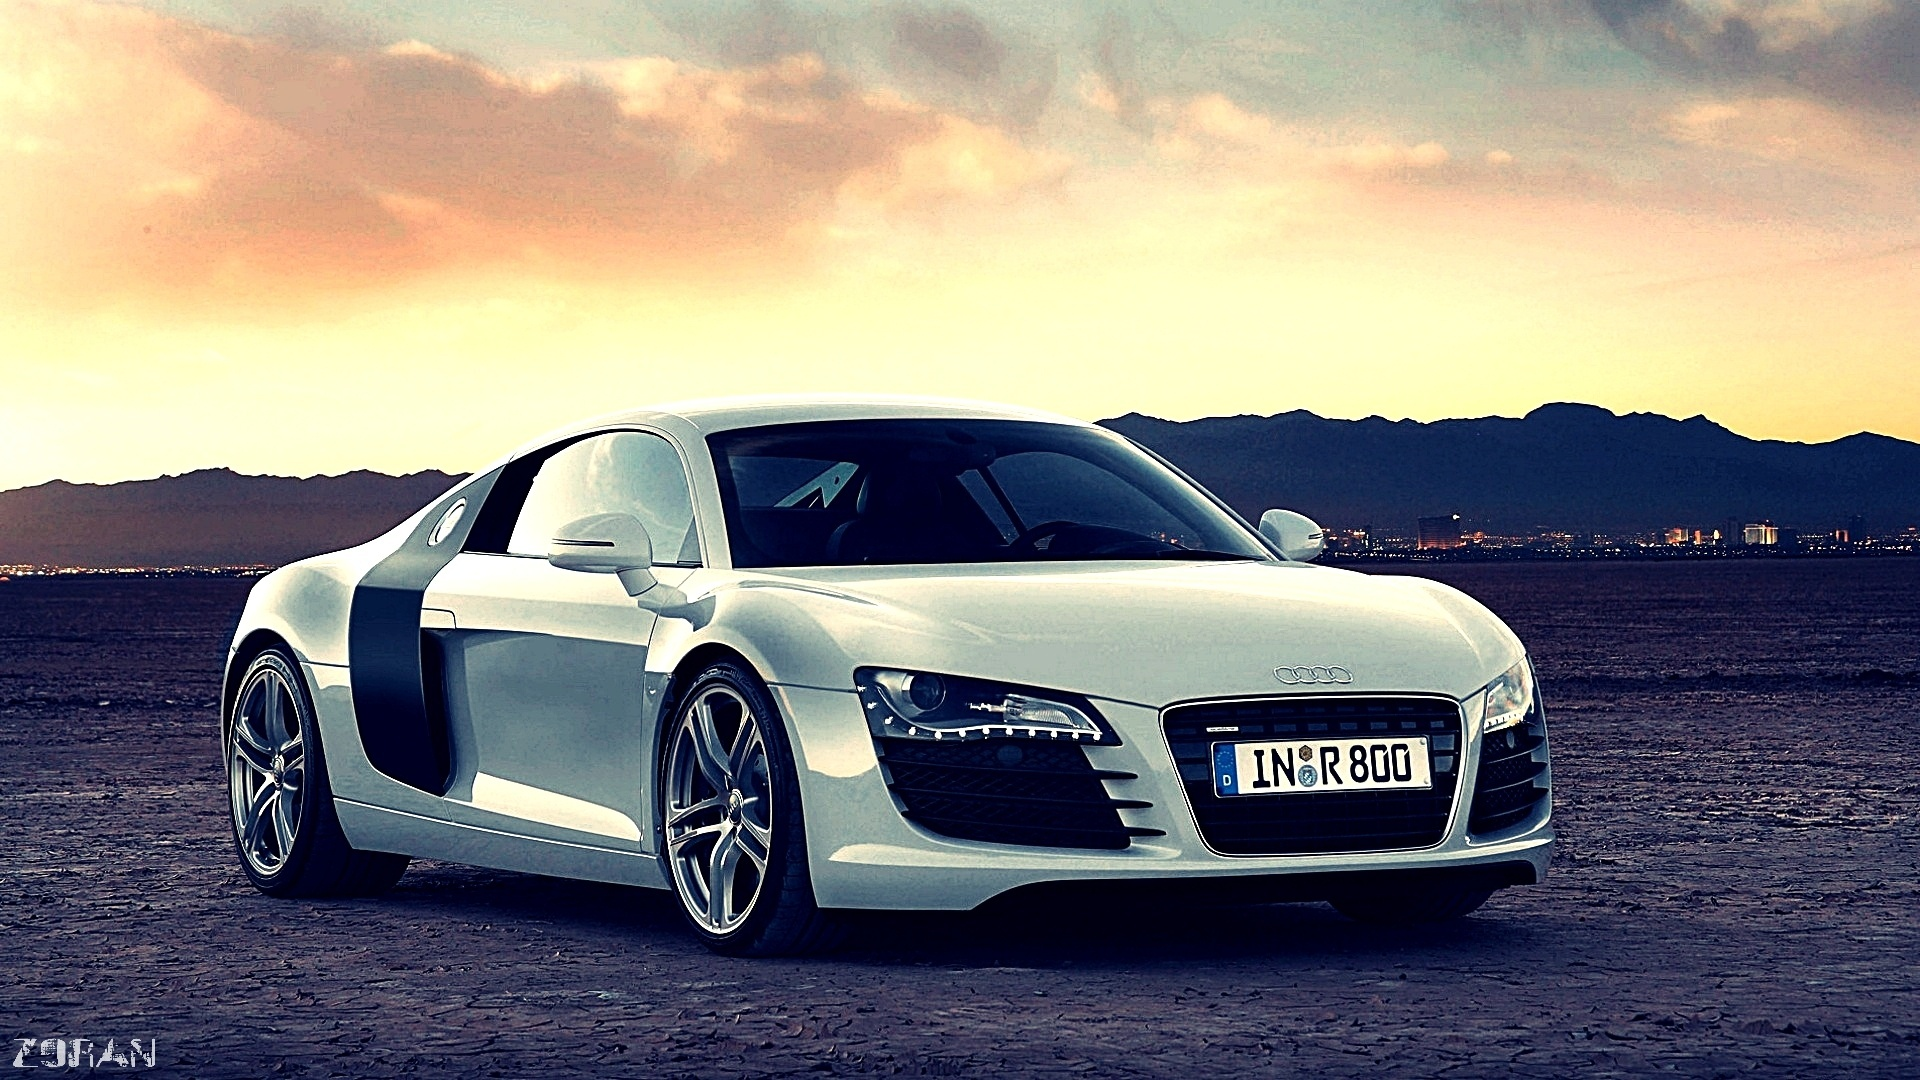 Audi R8 Wallpaper 1920x1080 - WallpaperSafari Hd Wallpapers 1920x1080 Cars